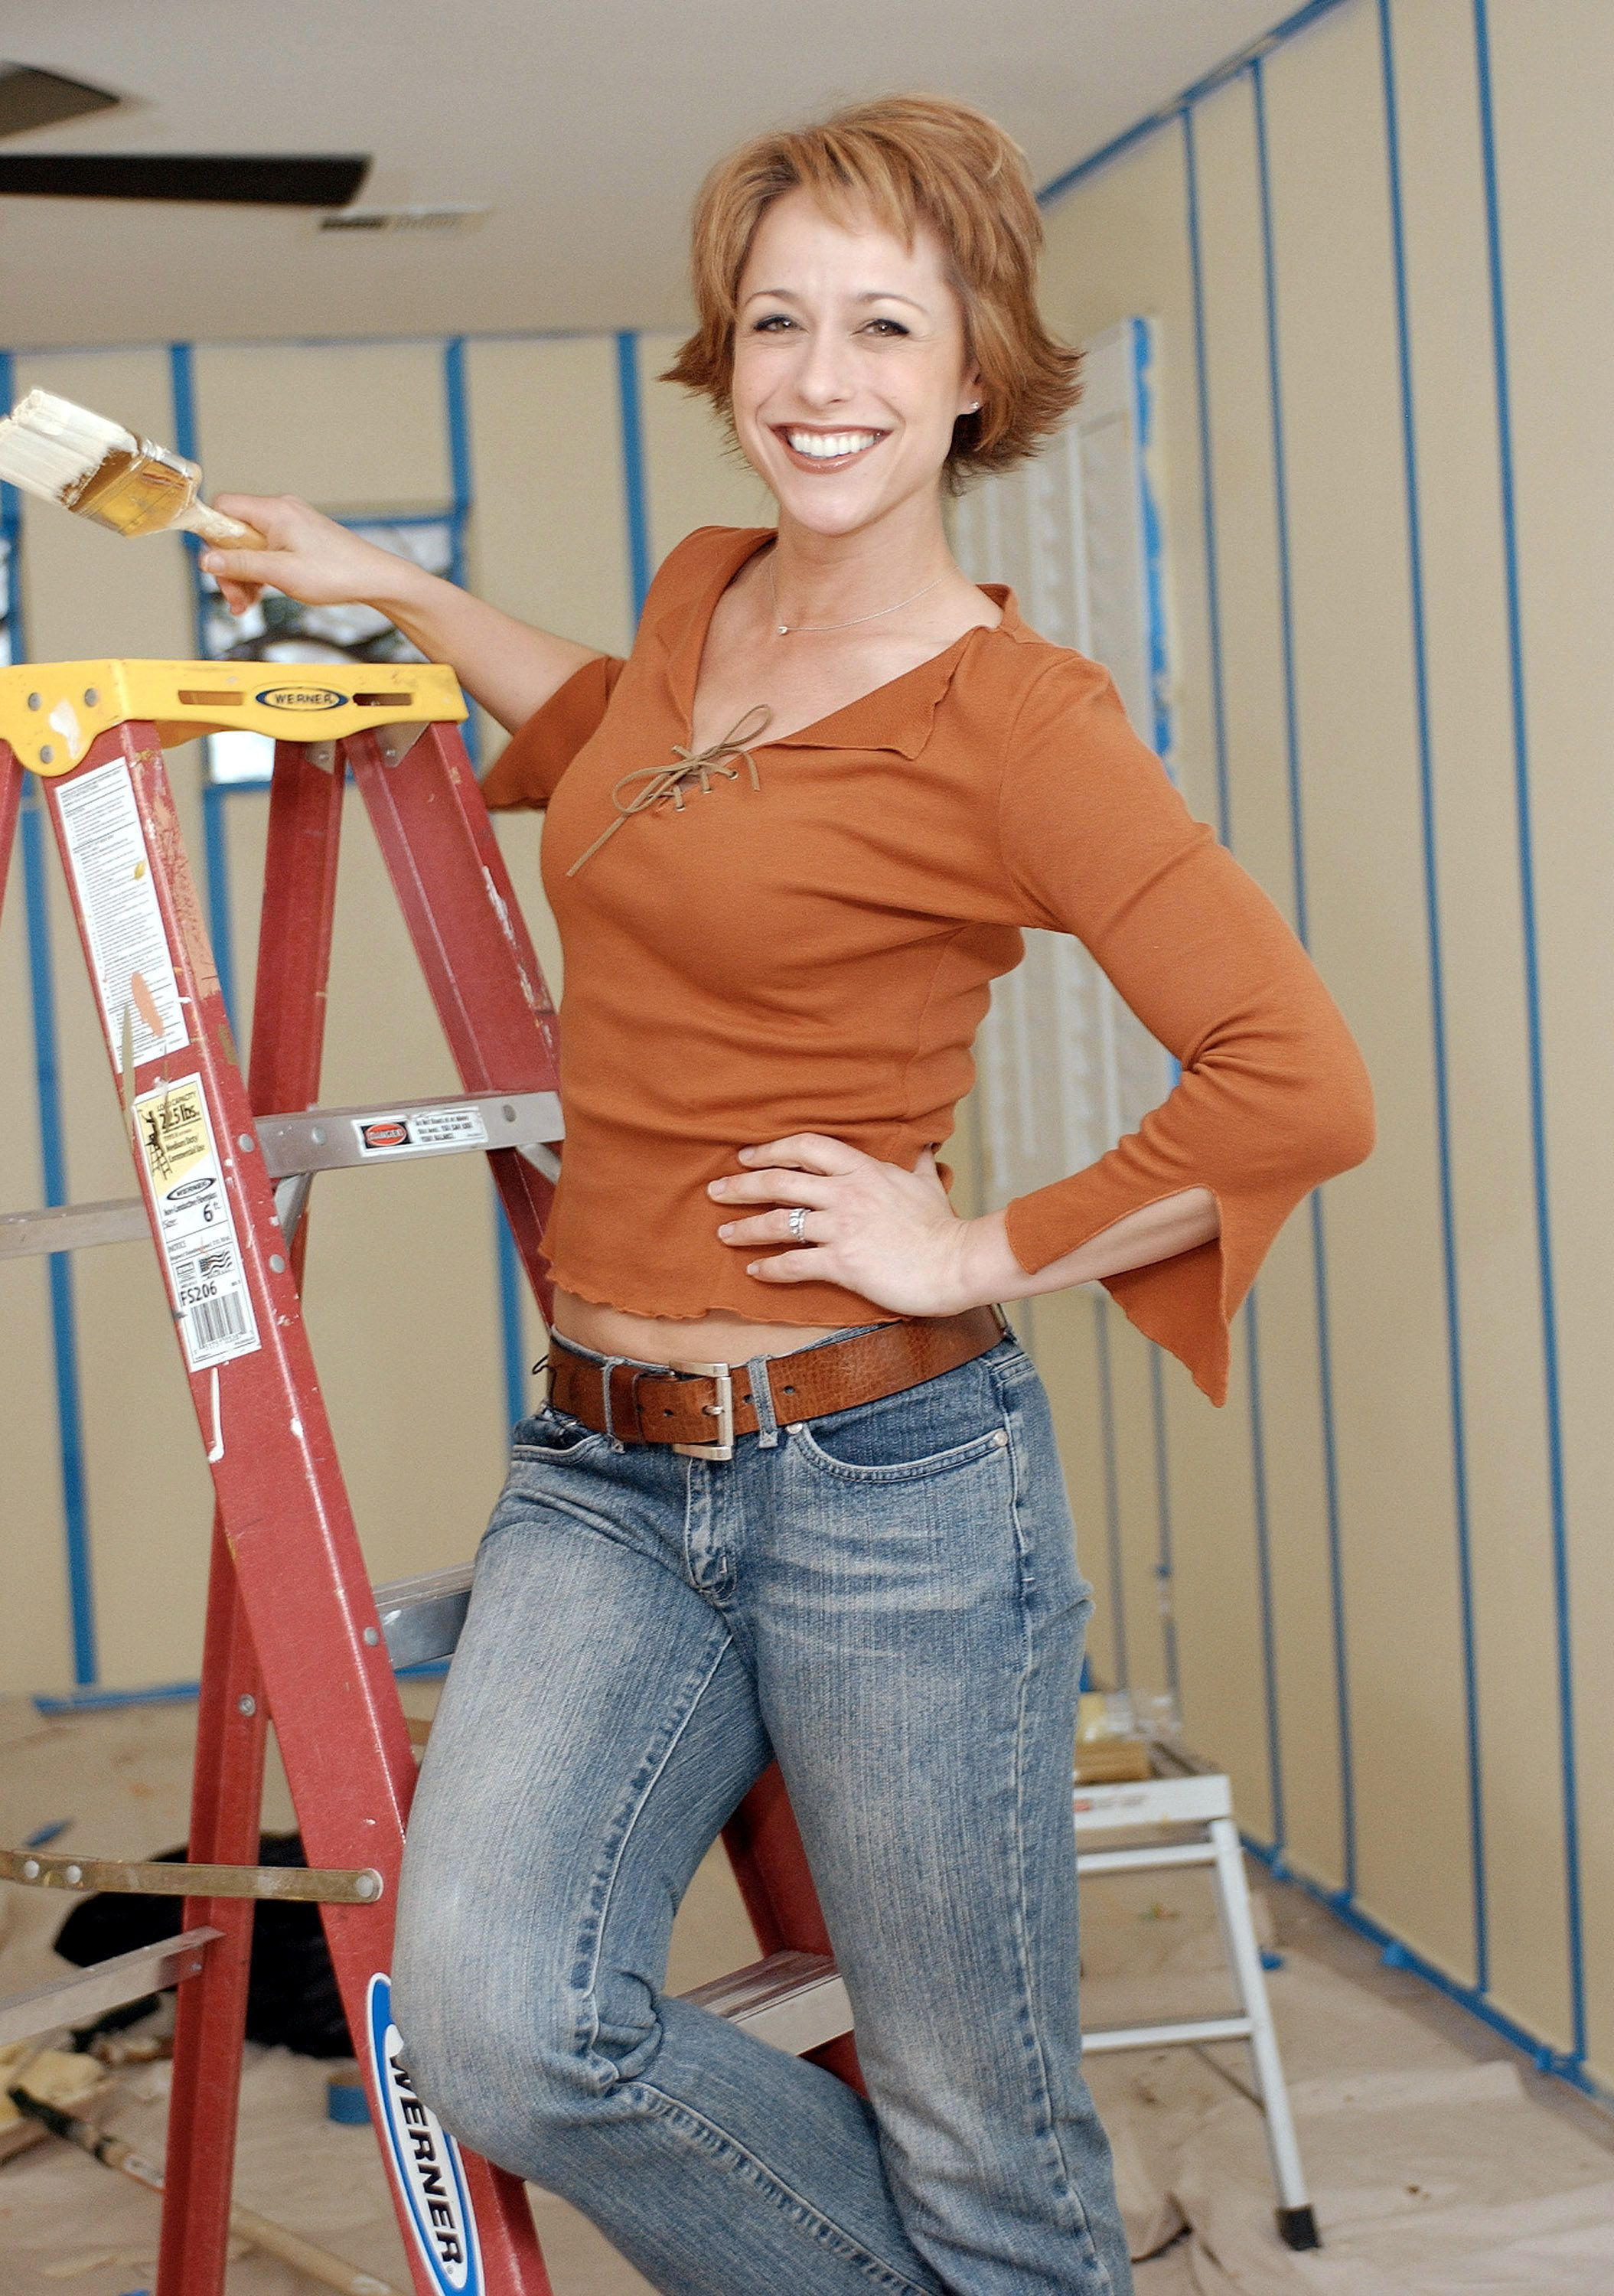 Paige Davis, host of TLC's 'Trading Spaces' in which neighbors switch homes for 48 hours and redocorate a room in each other's home with help from the show's host, designers and carpenters. (Photo by Bob Riha Jr/WireImage)